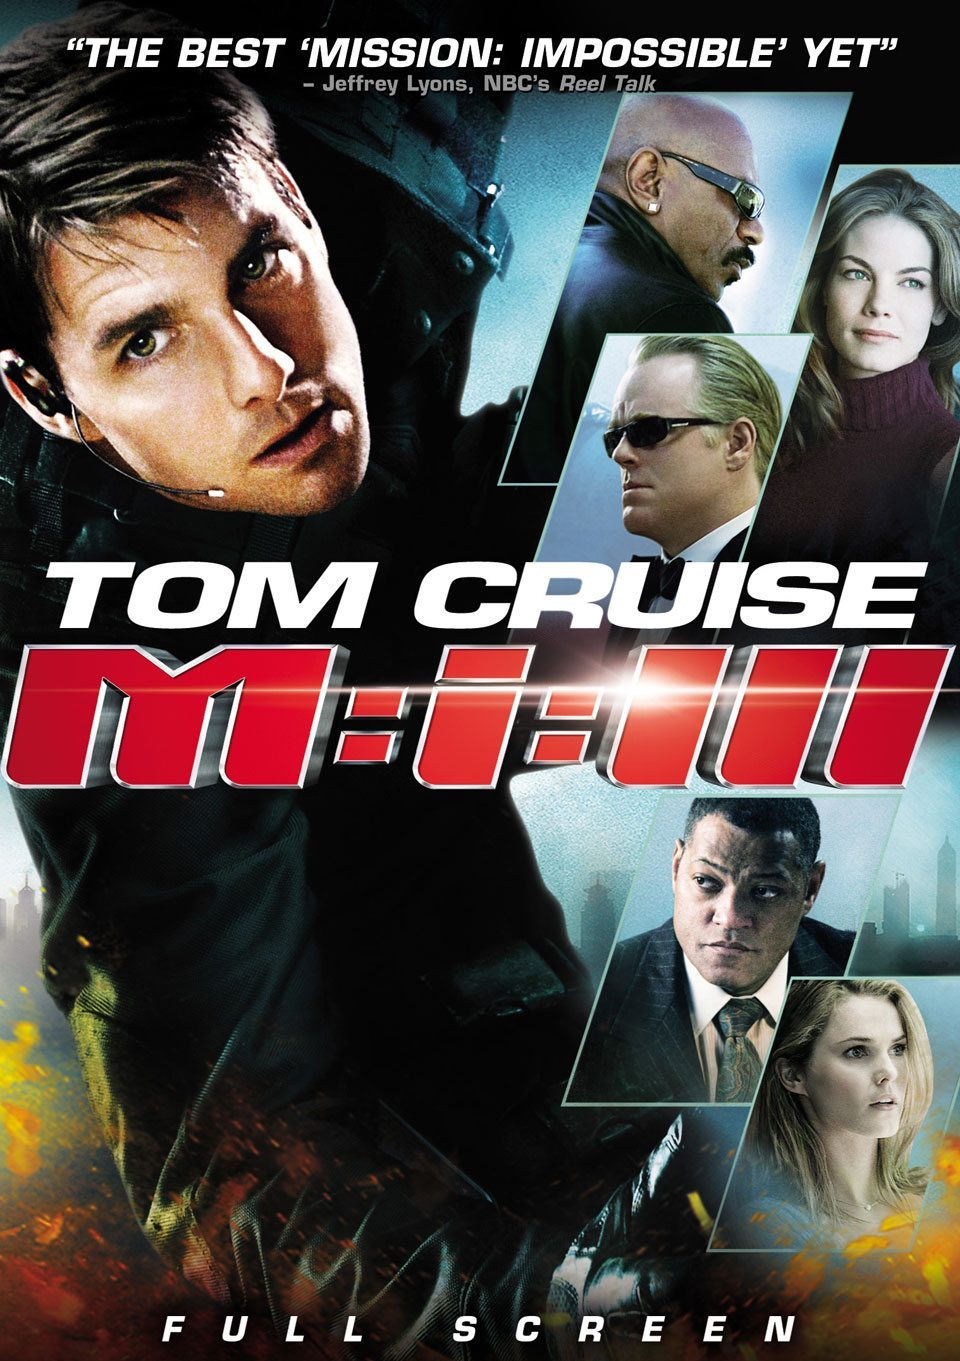 Mission Impossible 3 (2006)